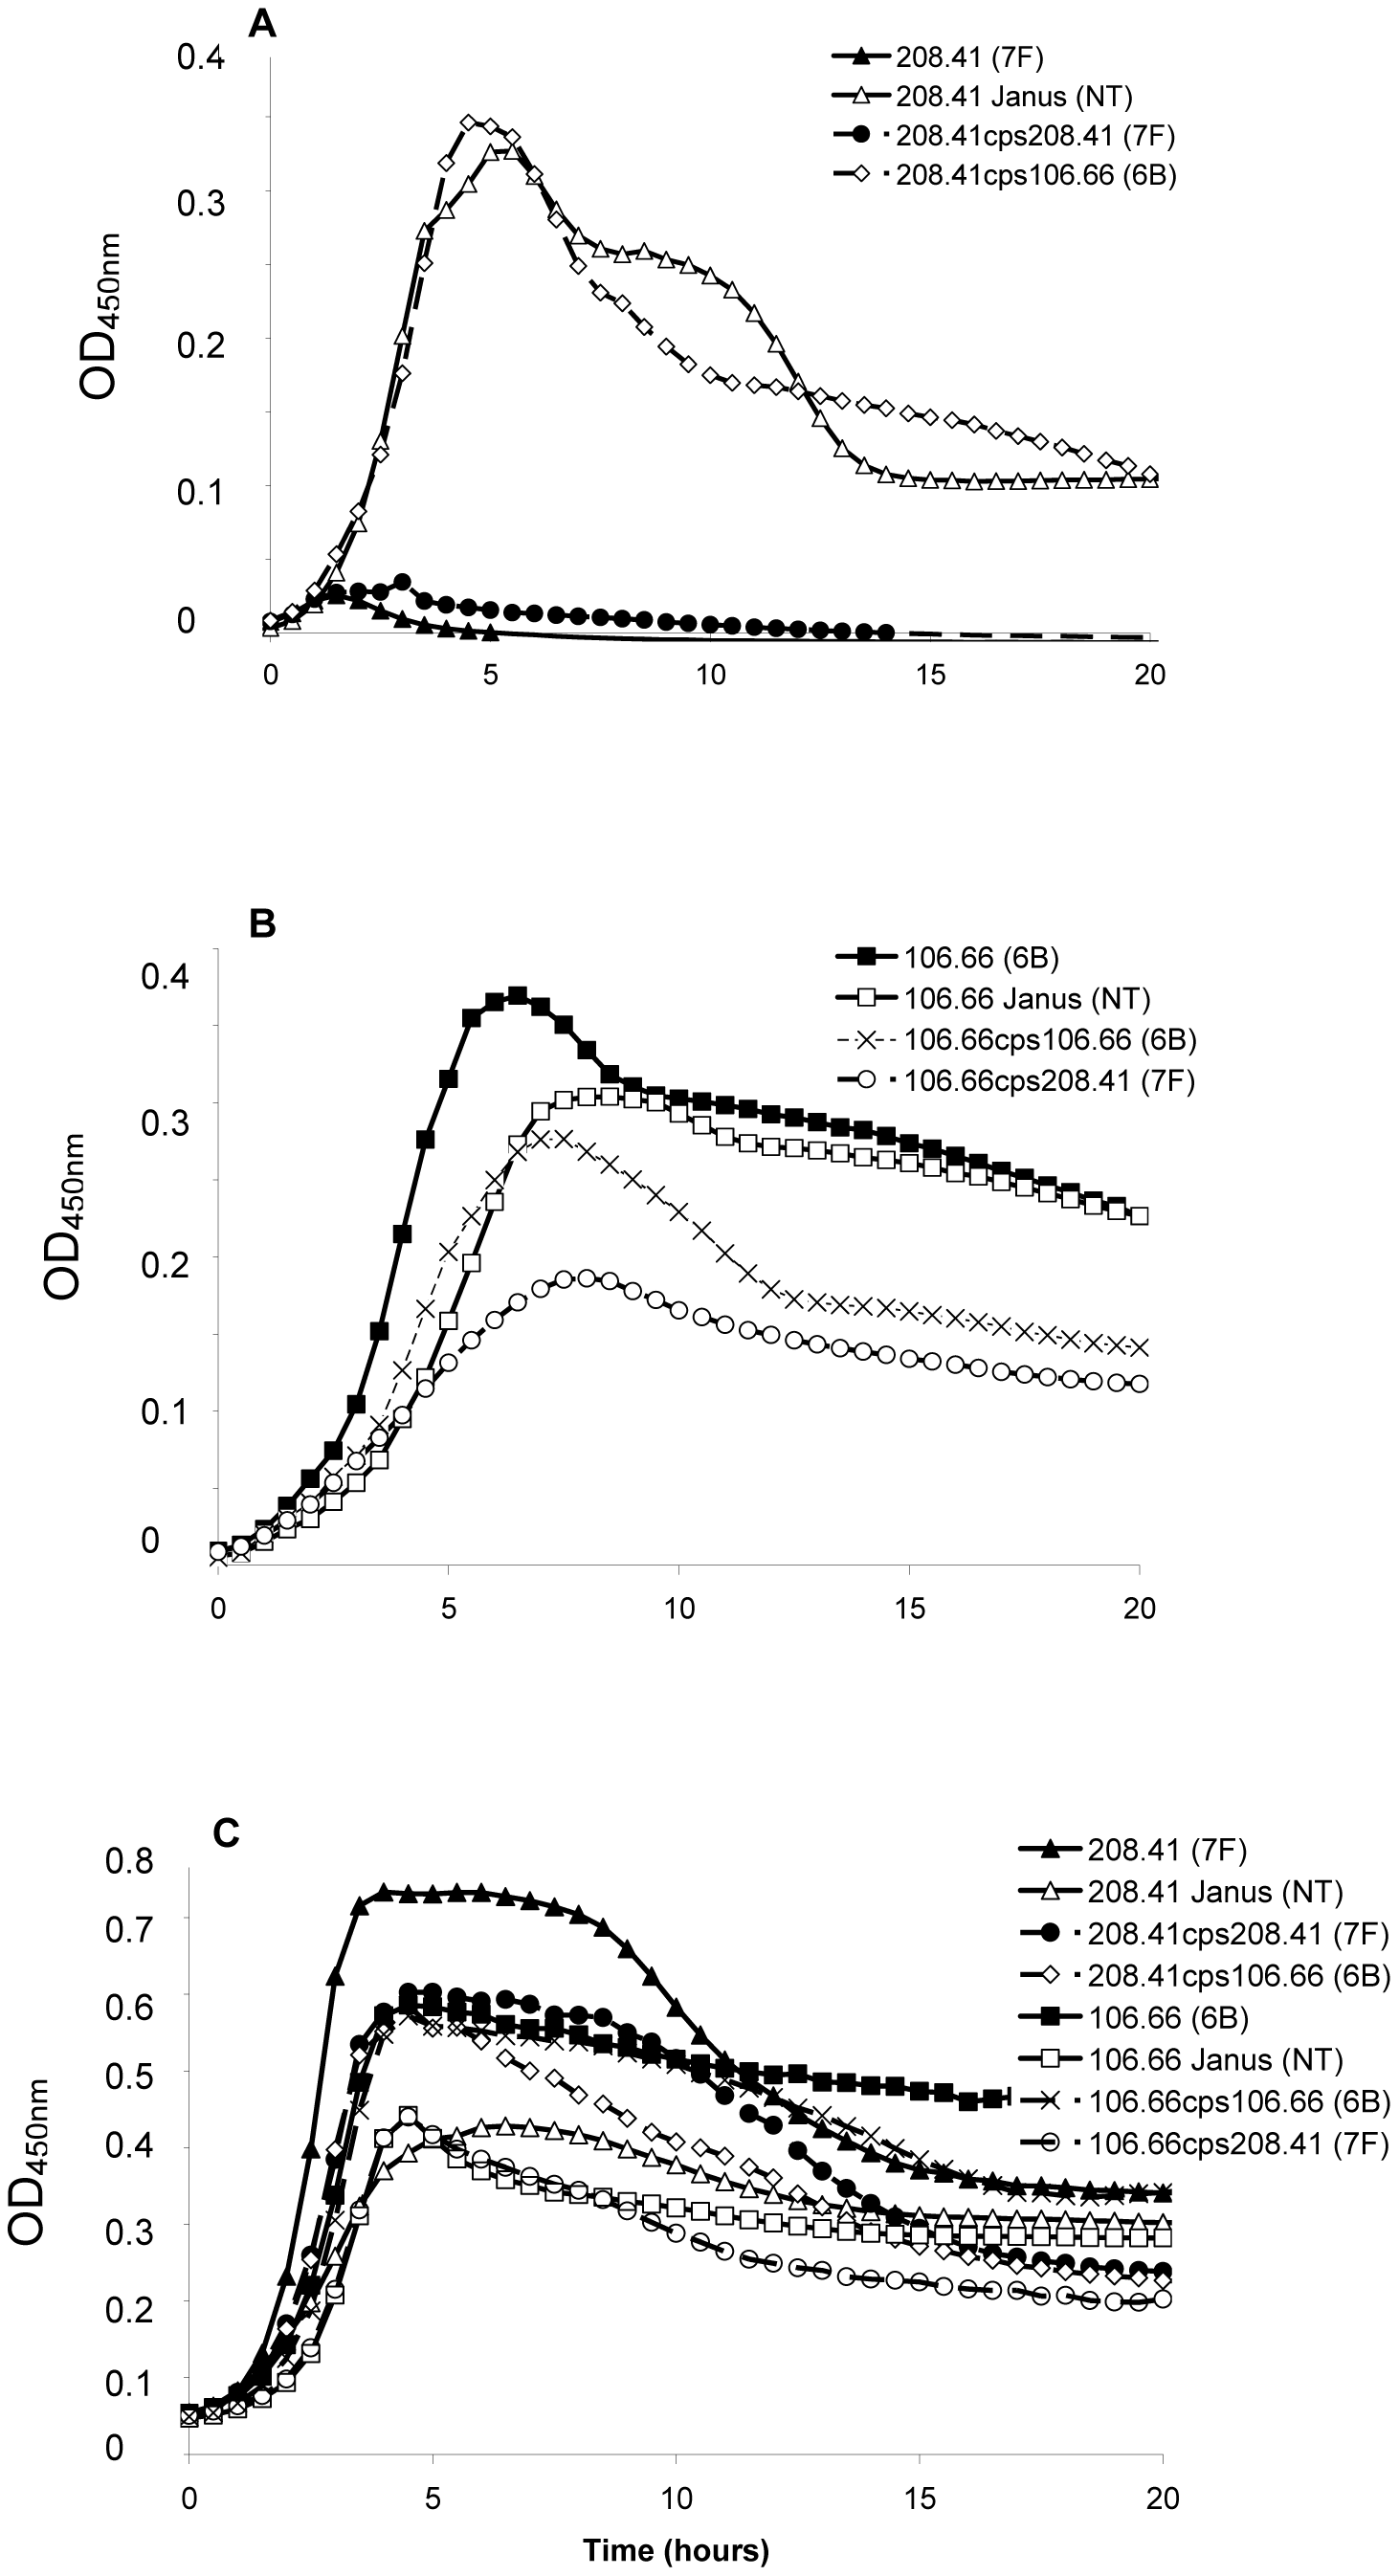 Growth patterns of strain 208.41 of serotype 7F and strain 106.66 of serotype 6B and their capsule switch mutants.